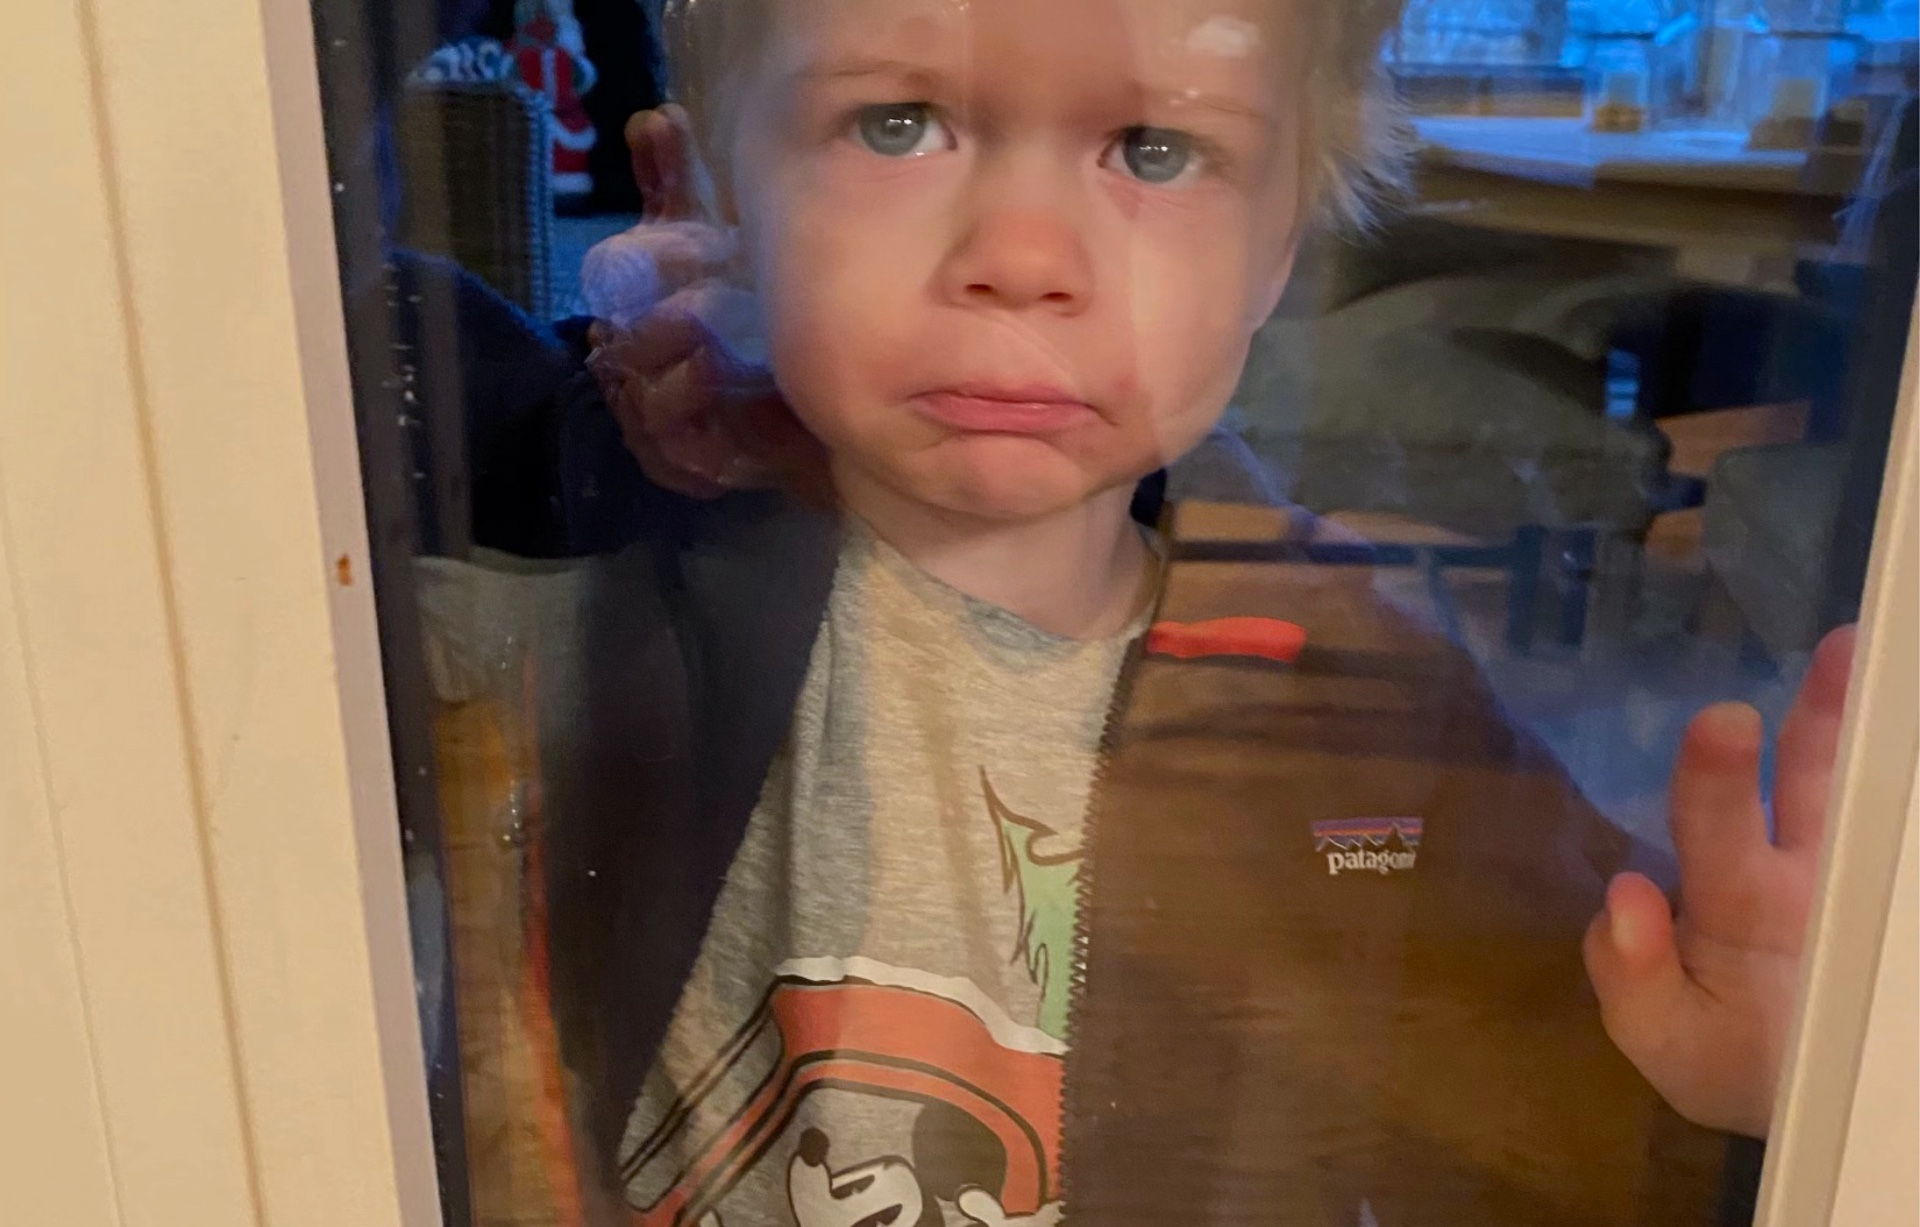 Kelsey's two-year-old stands on the other side of a window, frowning with a teary-eyed expression.